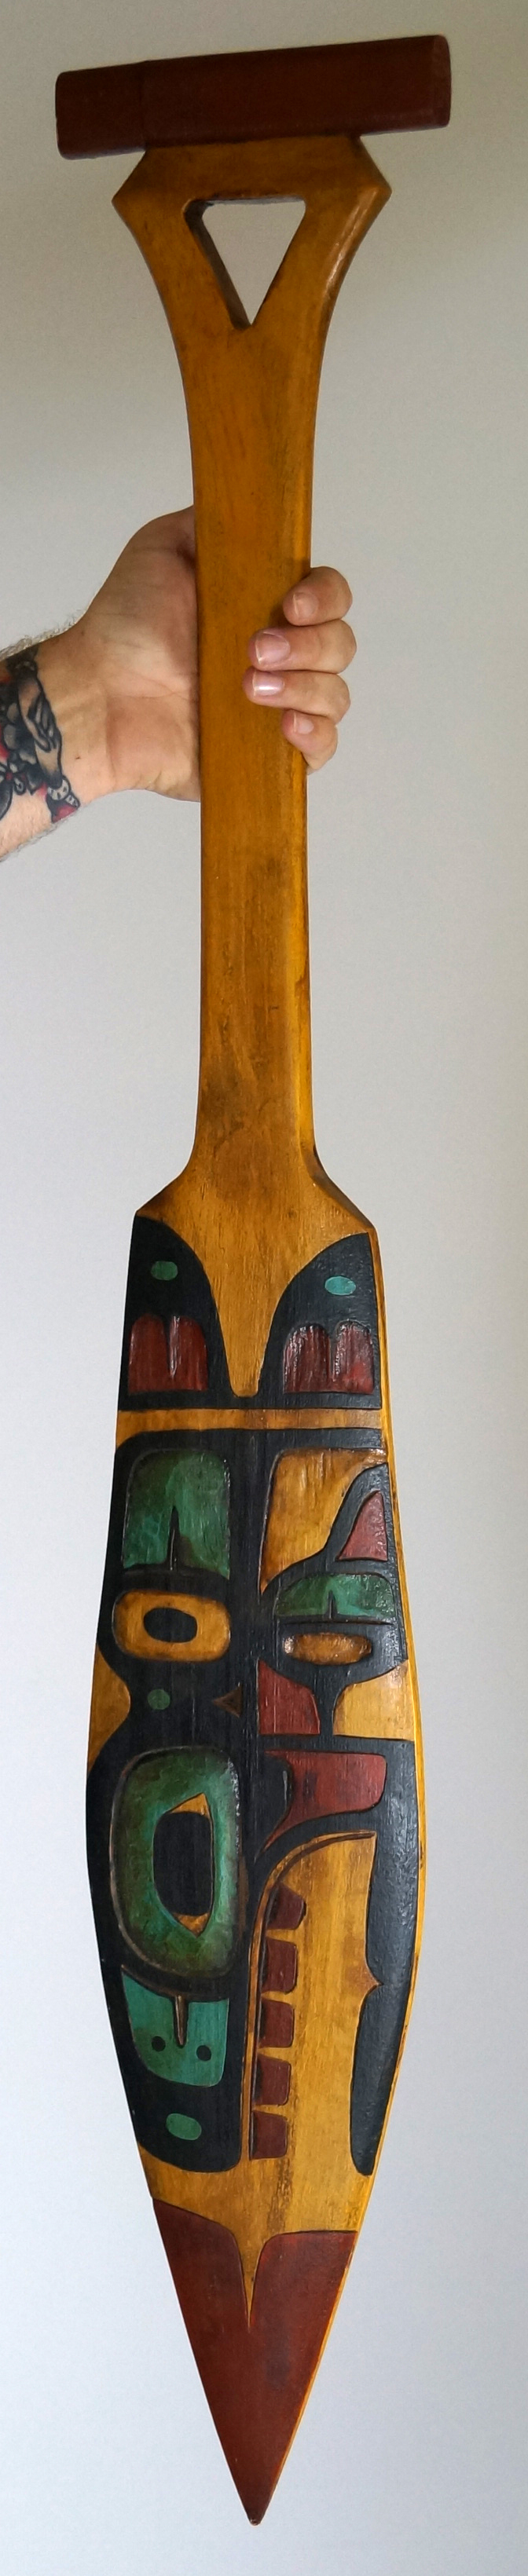 VINTAGE HAIDA CEREMONIAL CARVED PINE PADDLE/OAR. LENGTH 41 1/2